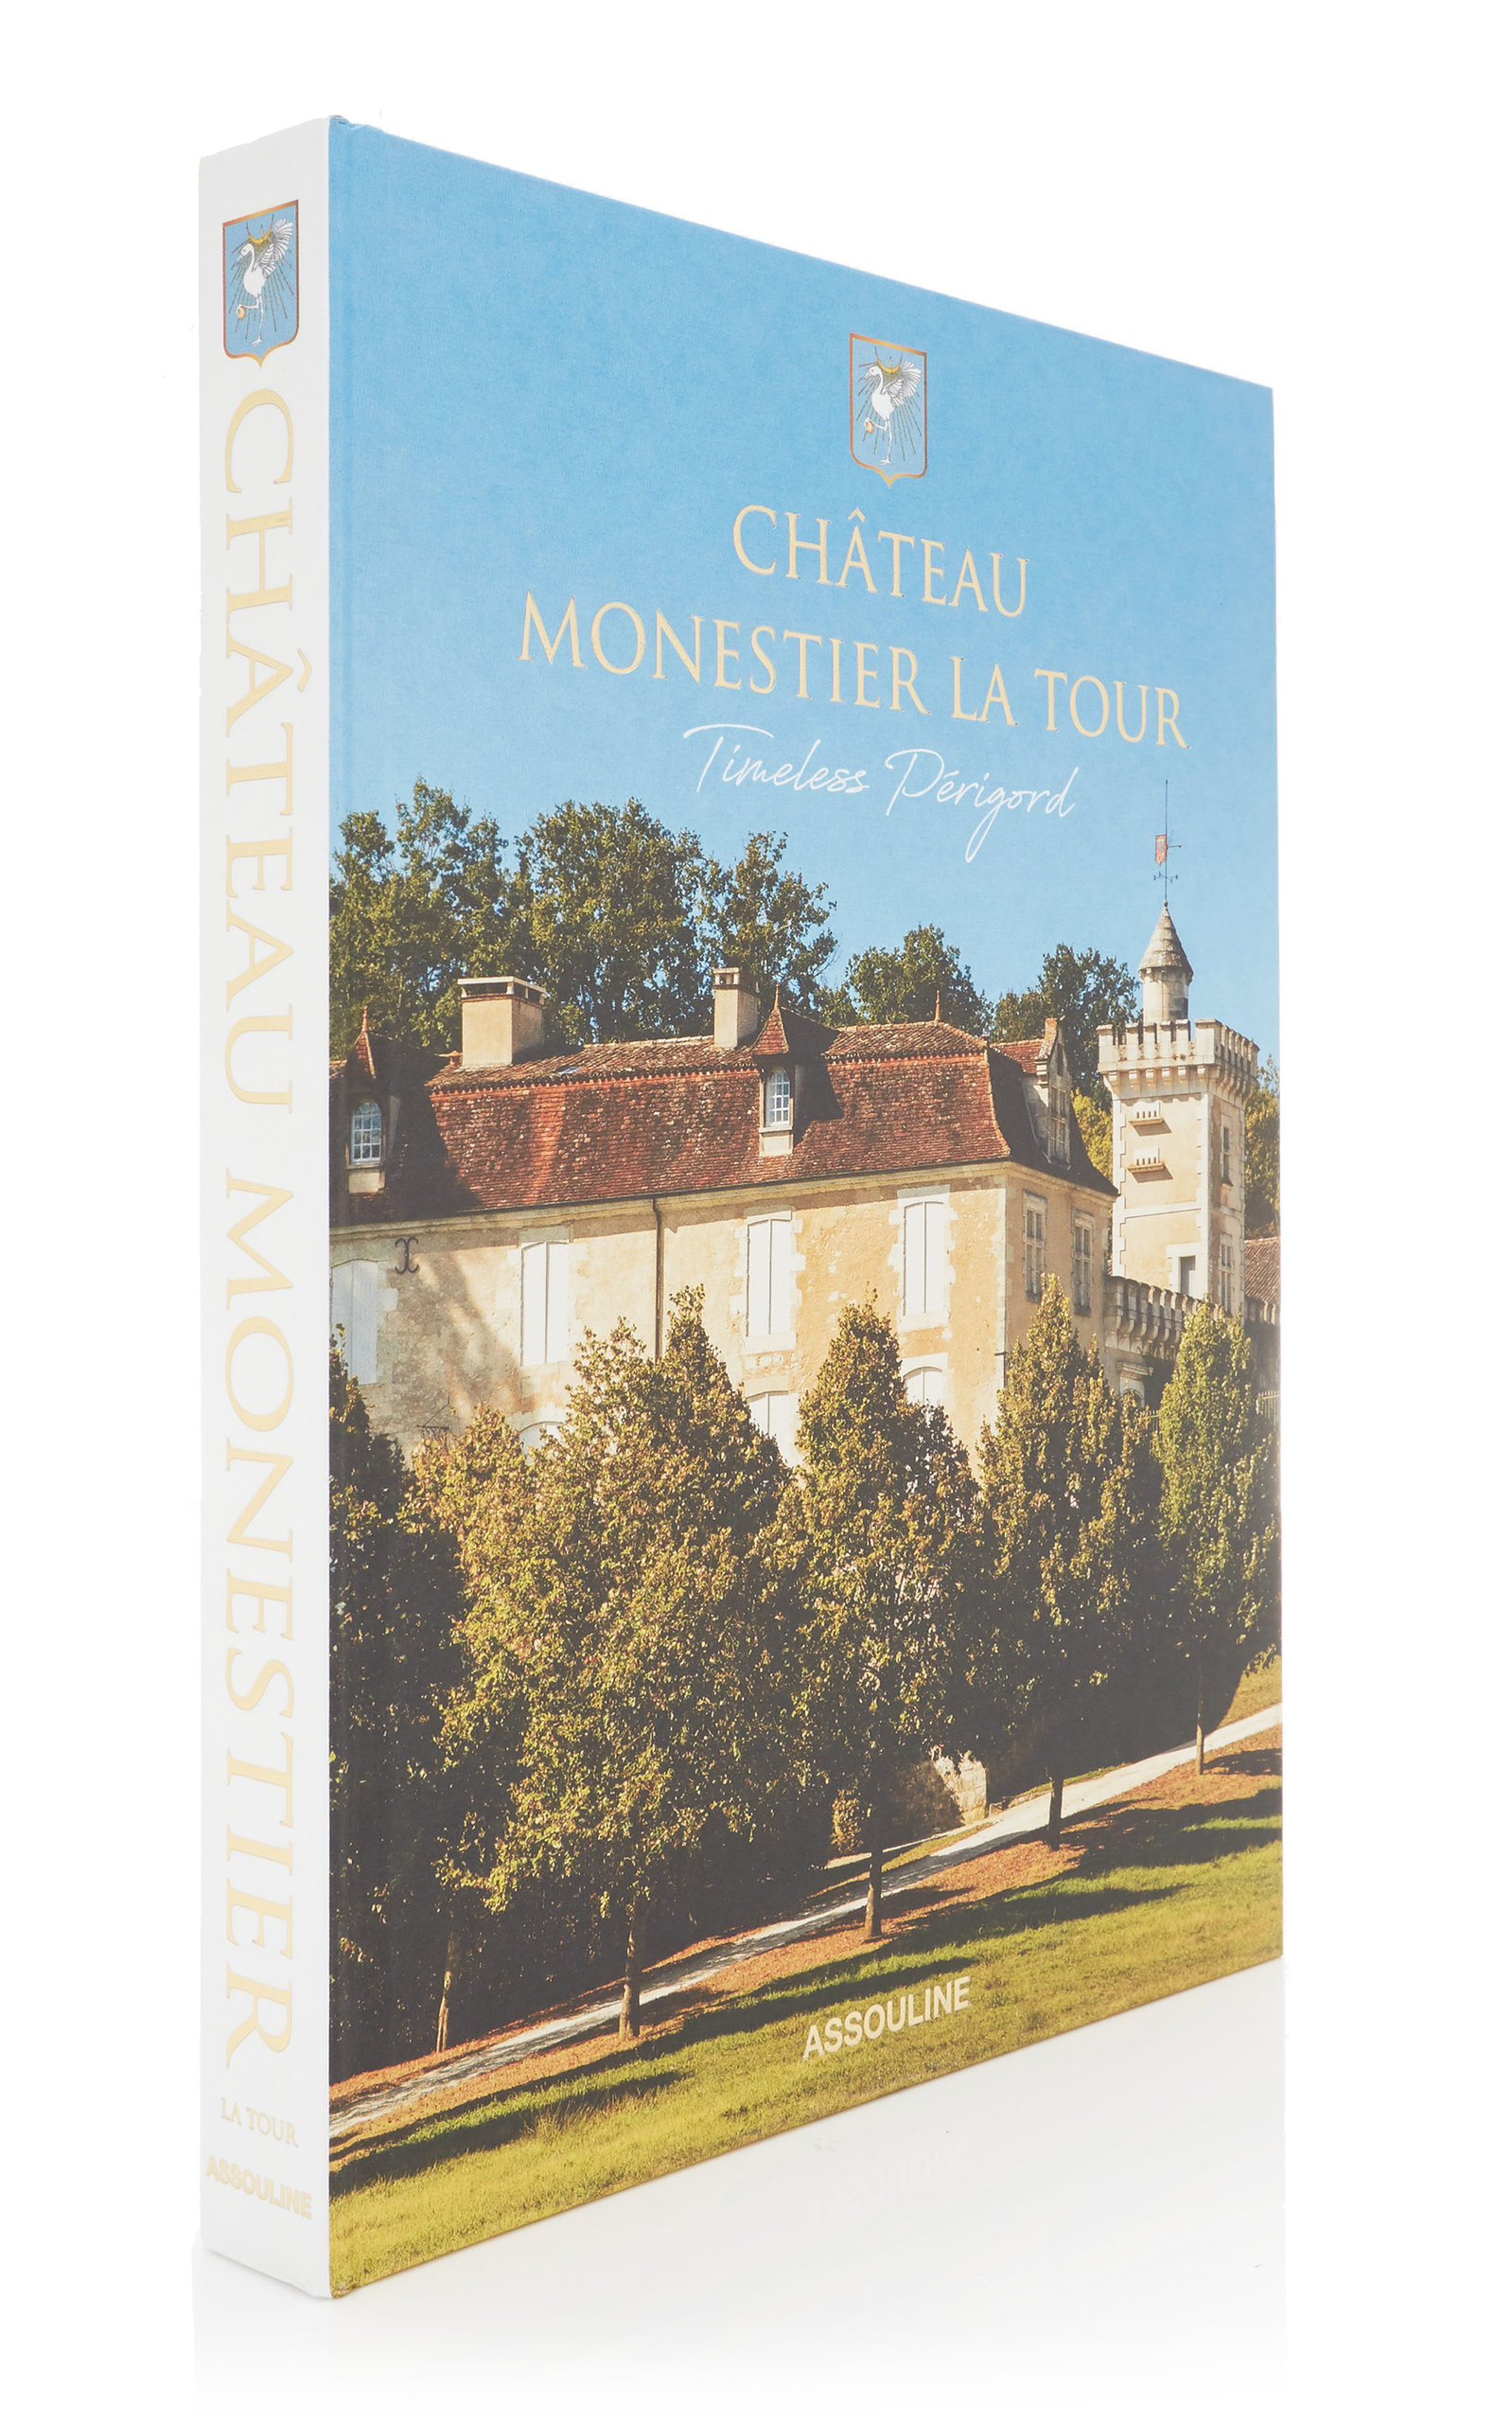 Timeless Périgord takes us on a journey through 'Château Monestier La Tour', a French country house